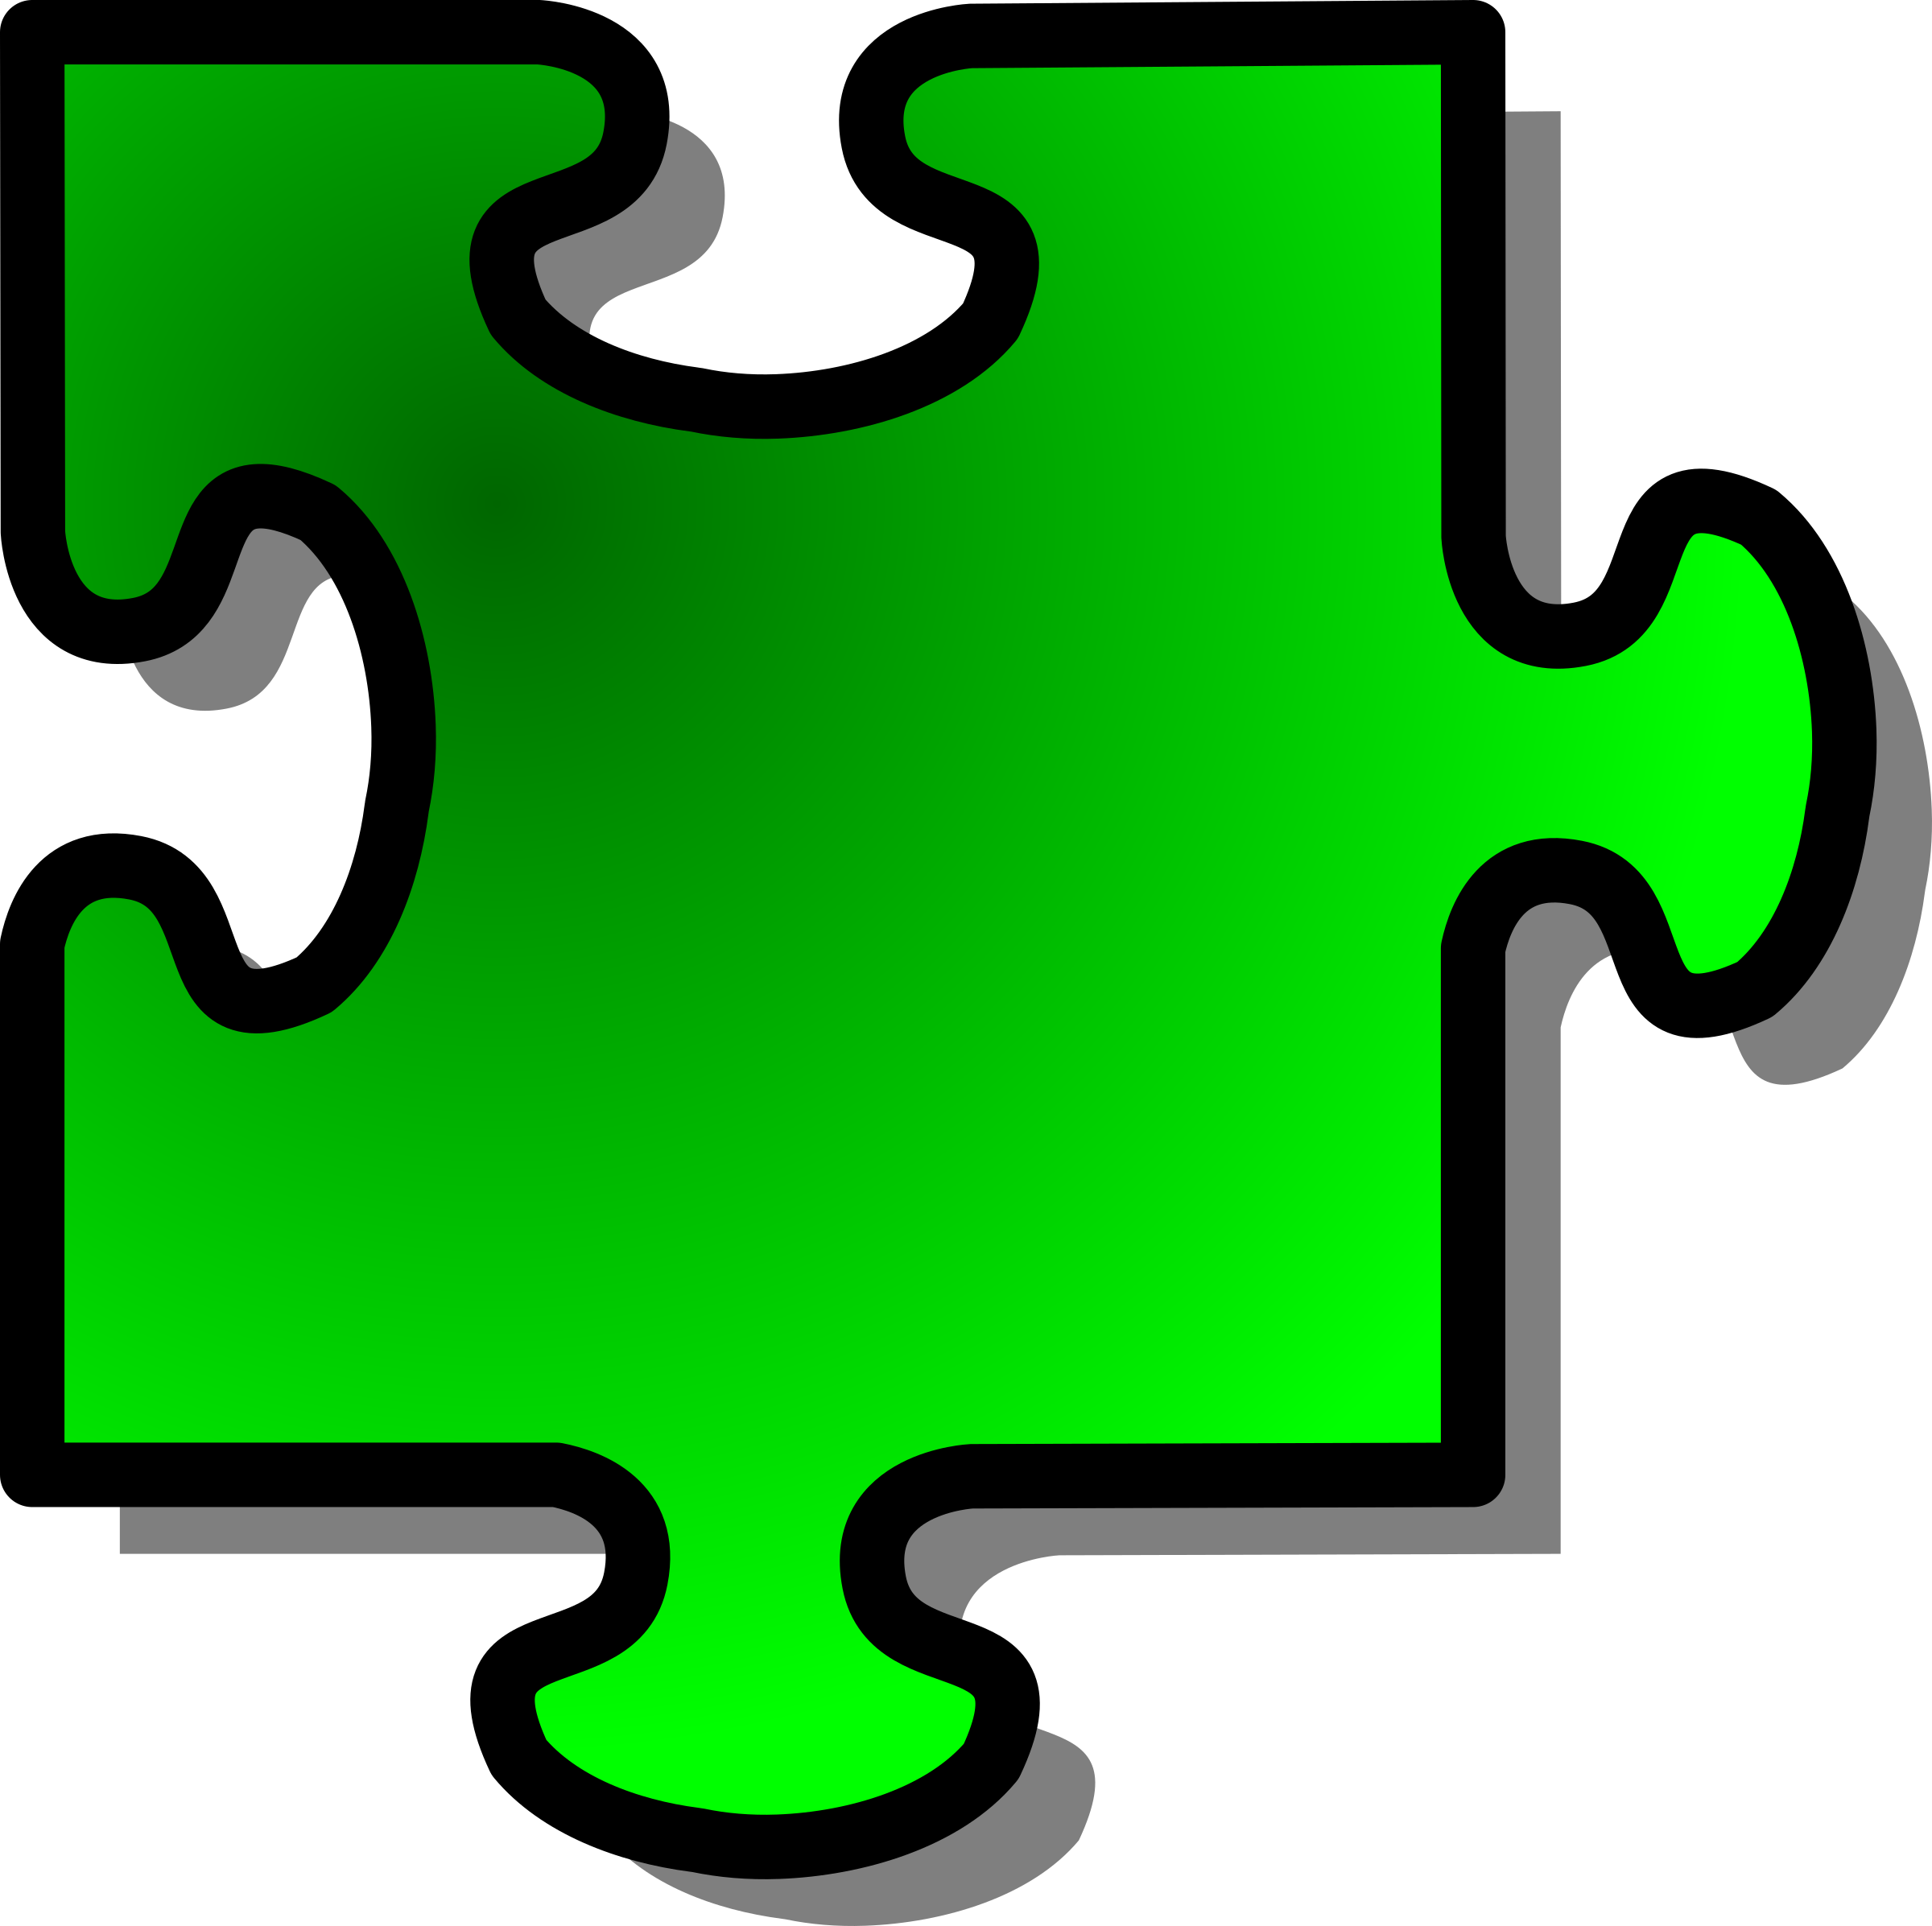 Green Jigsaw piece 10 by nicubunu